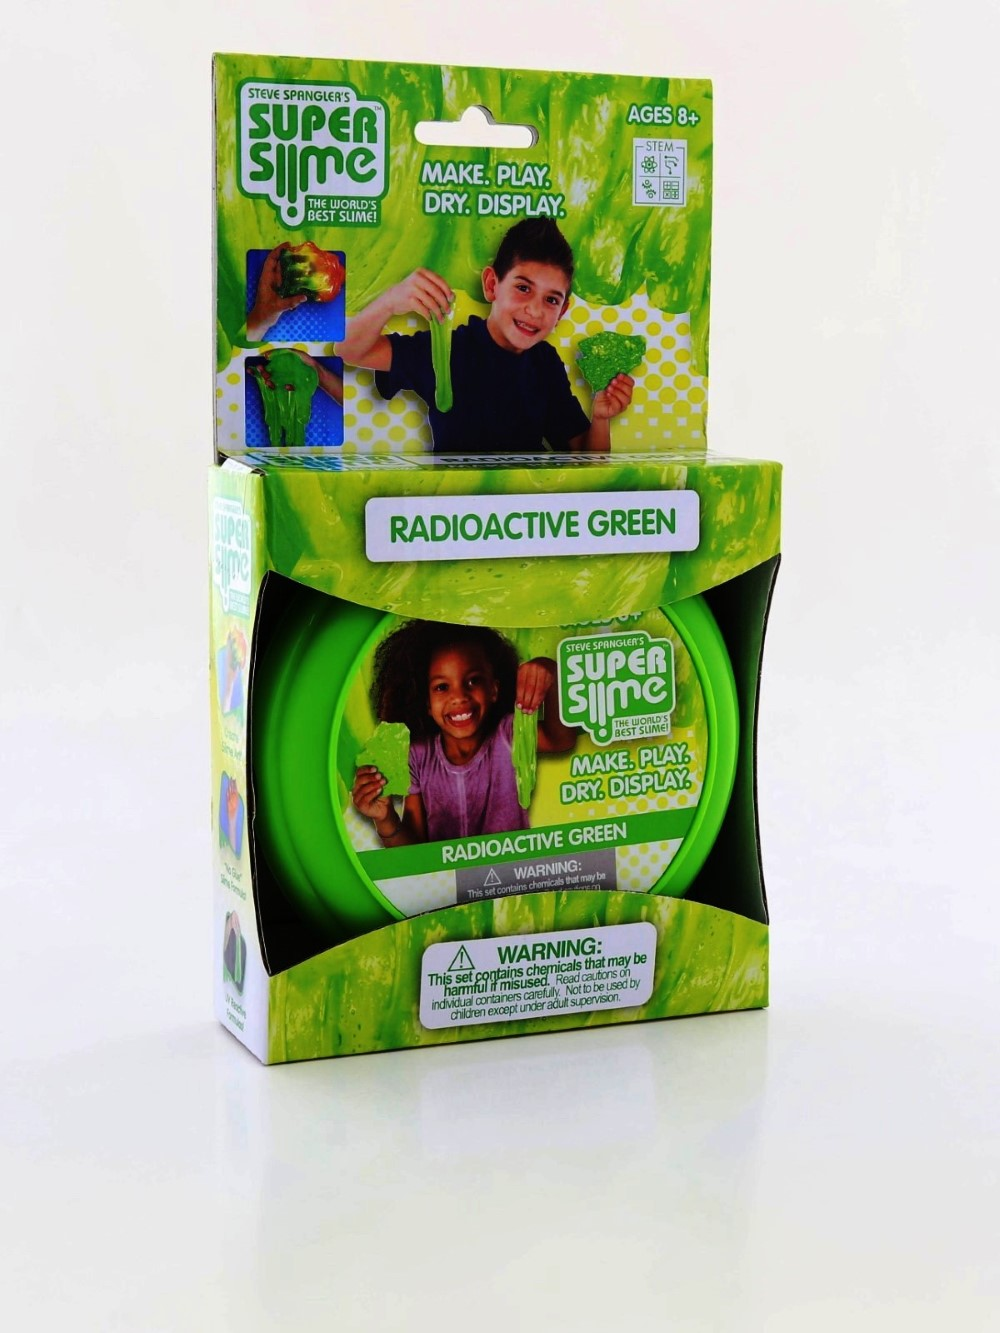 Be Amazing Toys Radioactive Green Super Slime Box